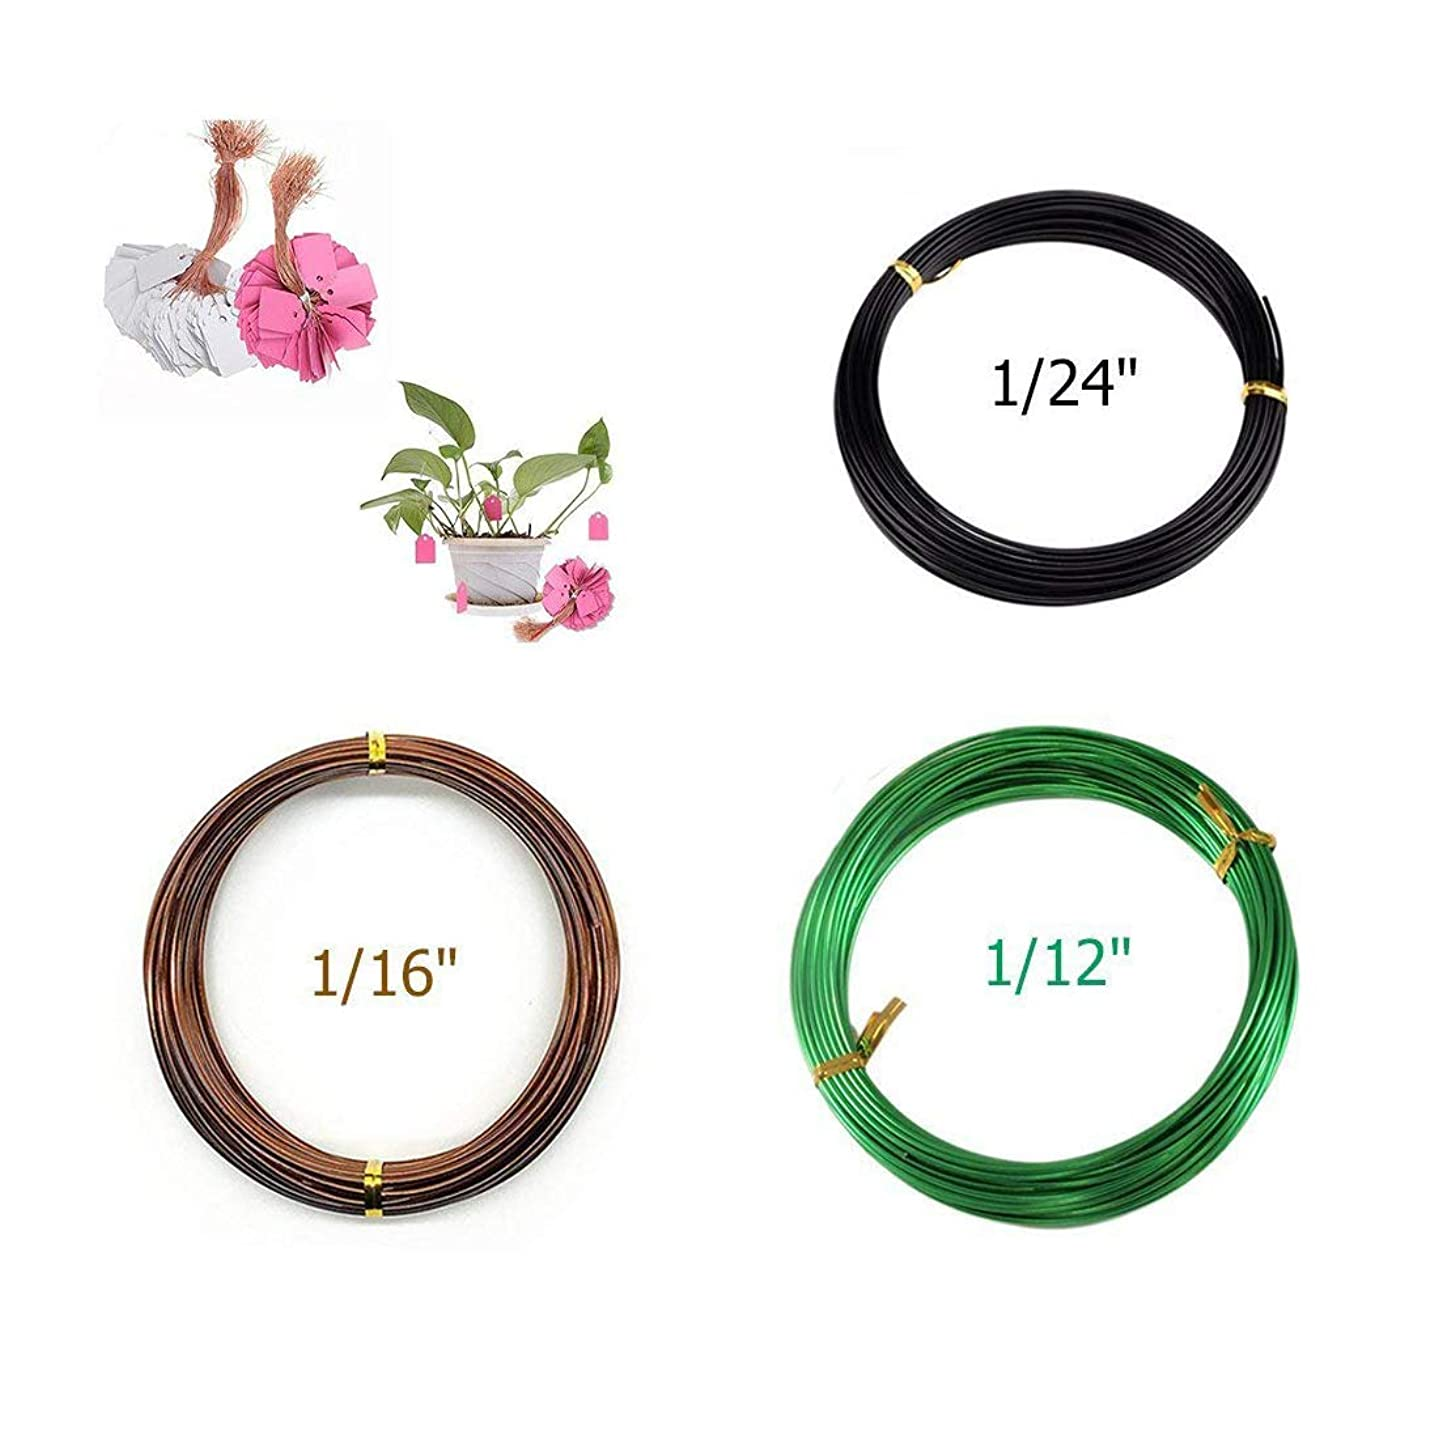 Preamer Set of 3 Long Lasting Bonsai Training Aluminum Wire for Tree Colored Aluminum Craft Wire - 1.0mm, 1.5mm, 2.0mm with 100Pcs Plastic Plant Labels(Assorted Color)